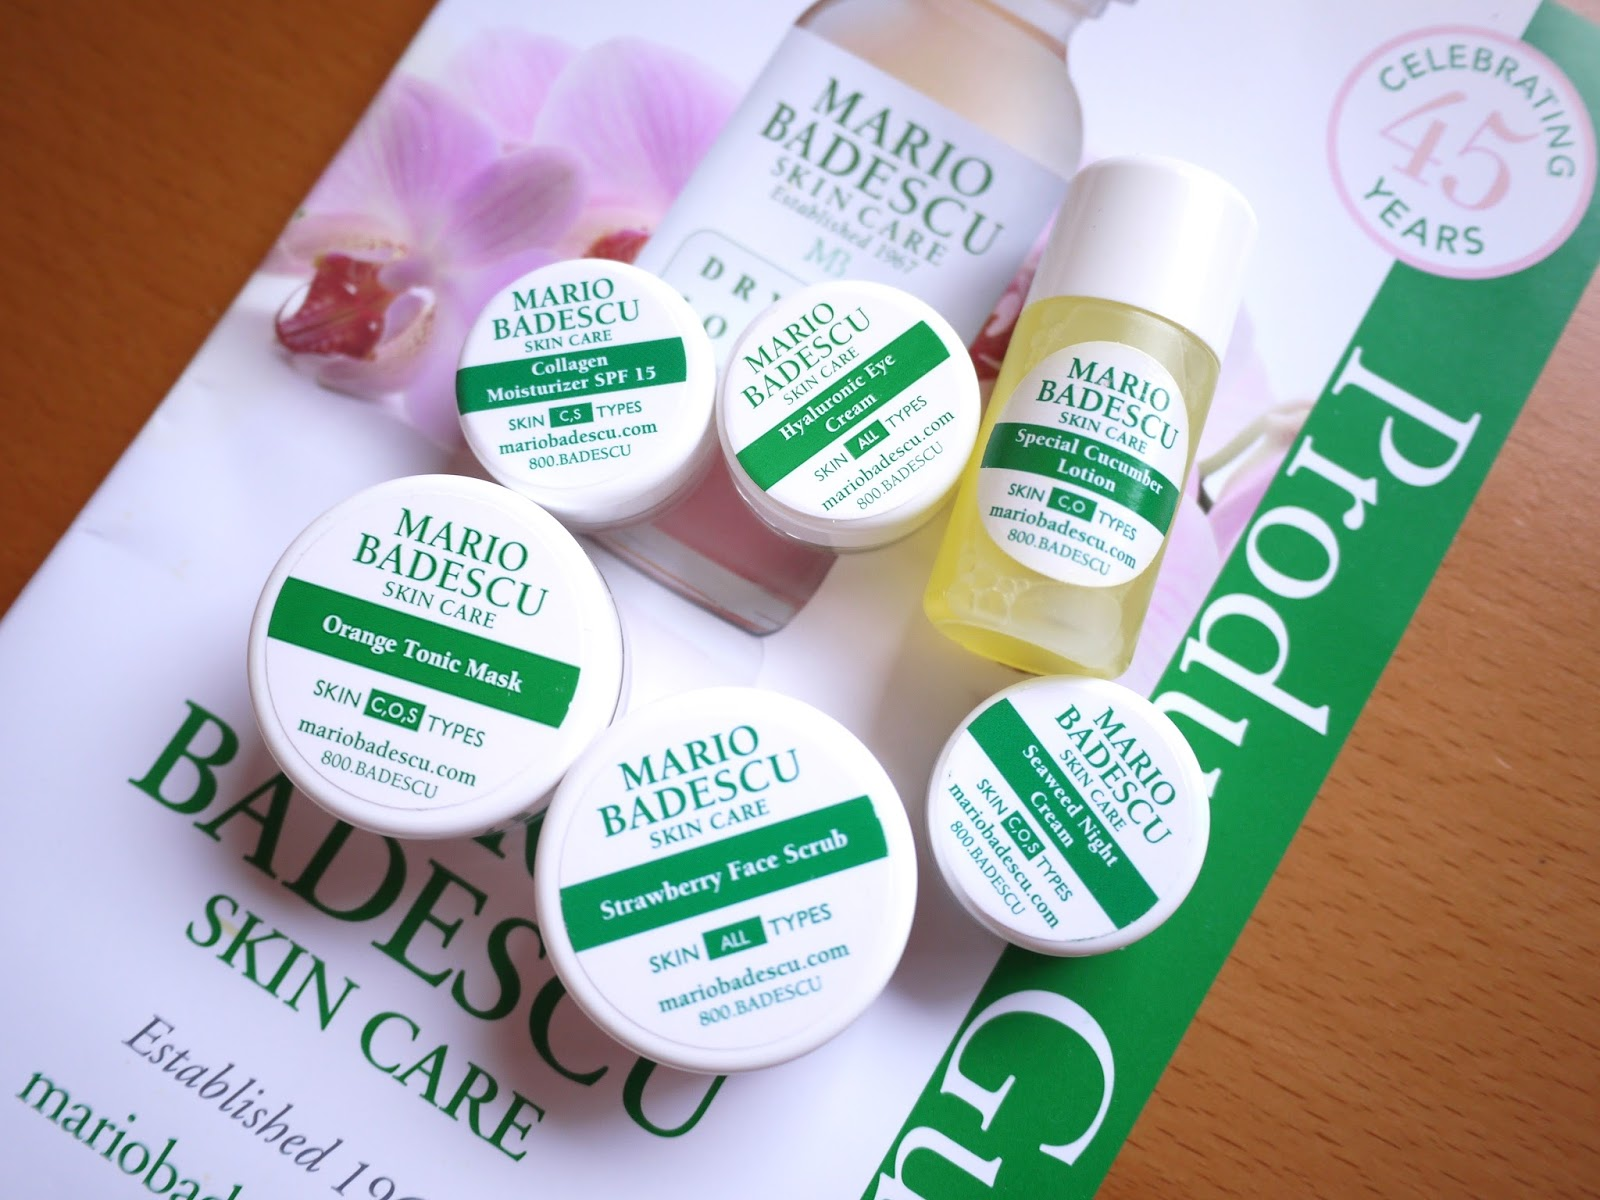 mario badescu first impression review strawberry face scrub seaweed night cream hyaluronic eye cream speical cucumber lotion orange tonic mask